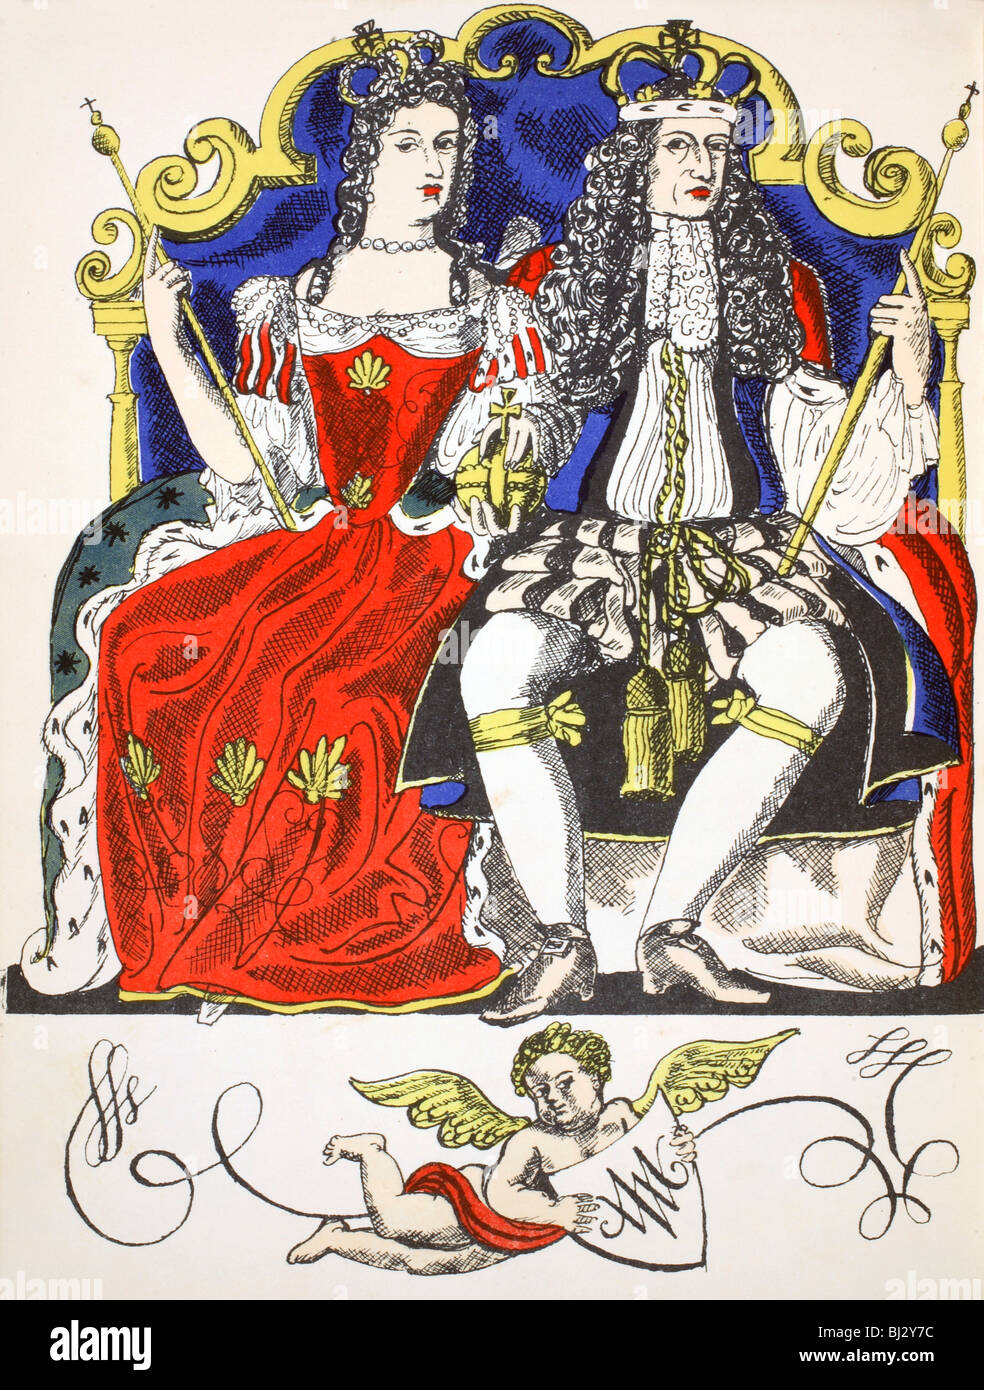 William III and Mary II, King and Queen of Great Britain and Ireland from 1688, (1932). Artist: Rosalind Thornycroft - Stock Image